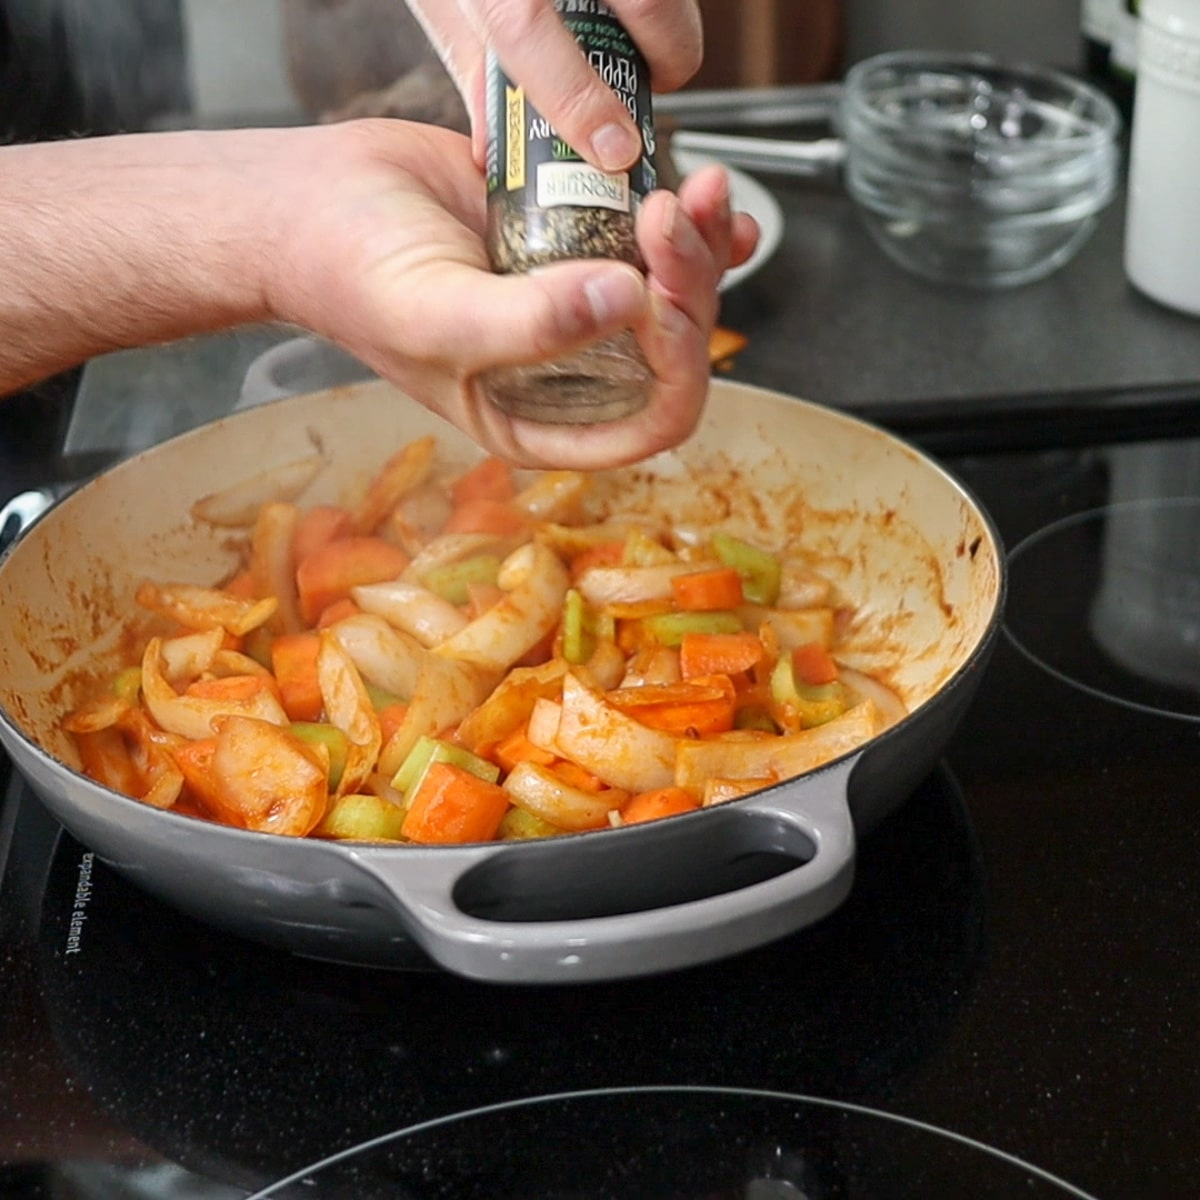 adding pepper to the vegetables